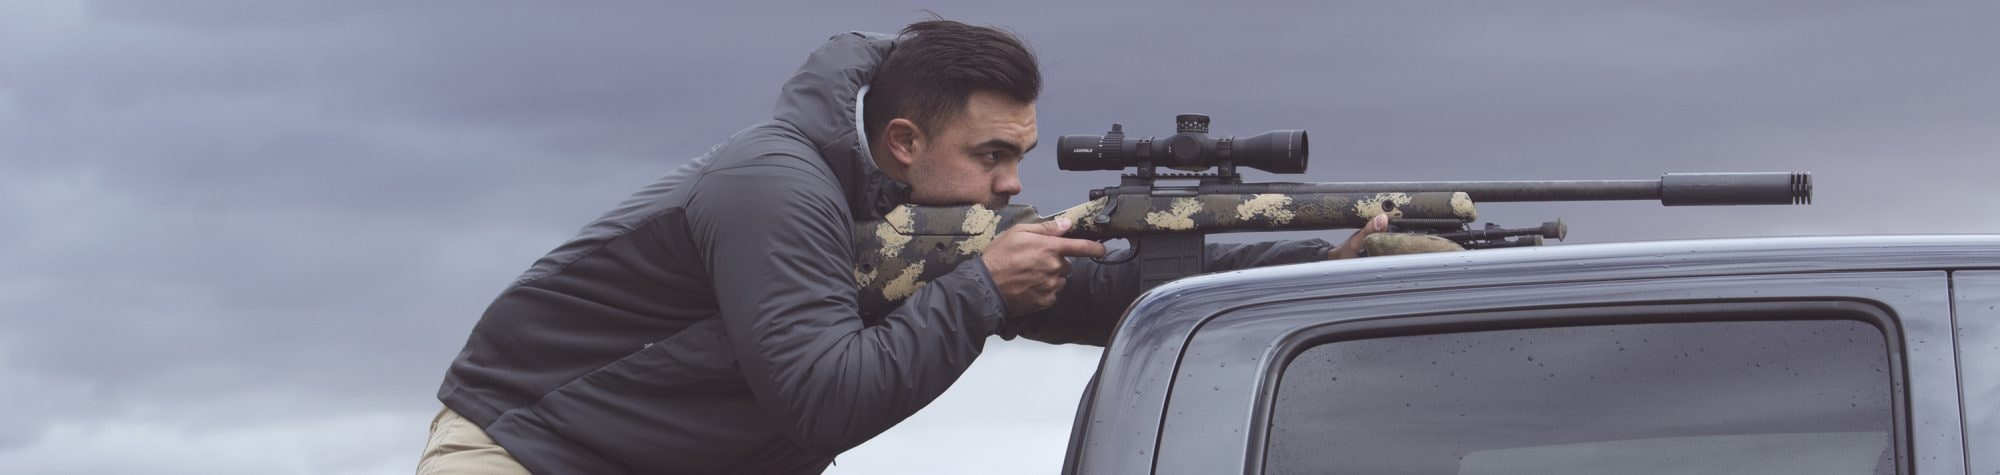 A man aims a rifle through a Leupold Mark 5HD scope on a bolt-action rifle